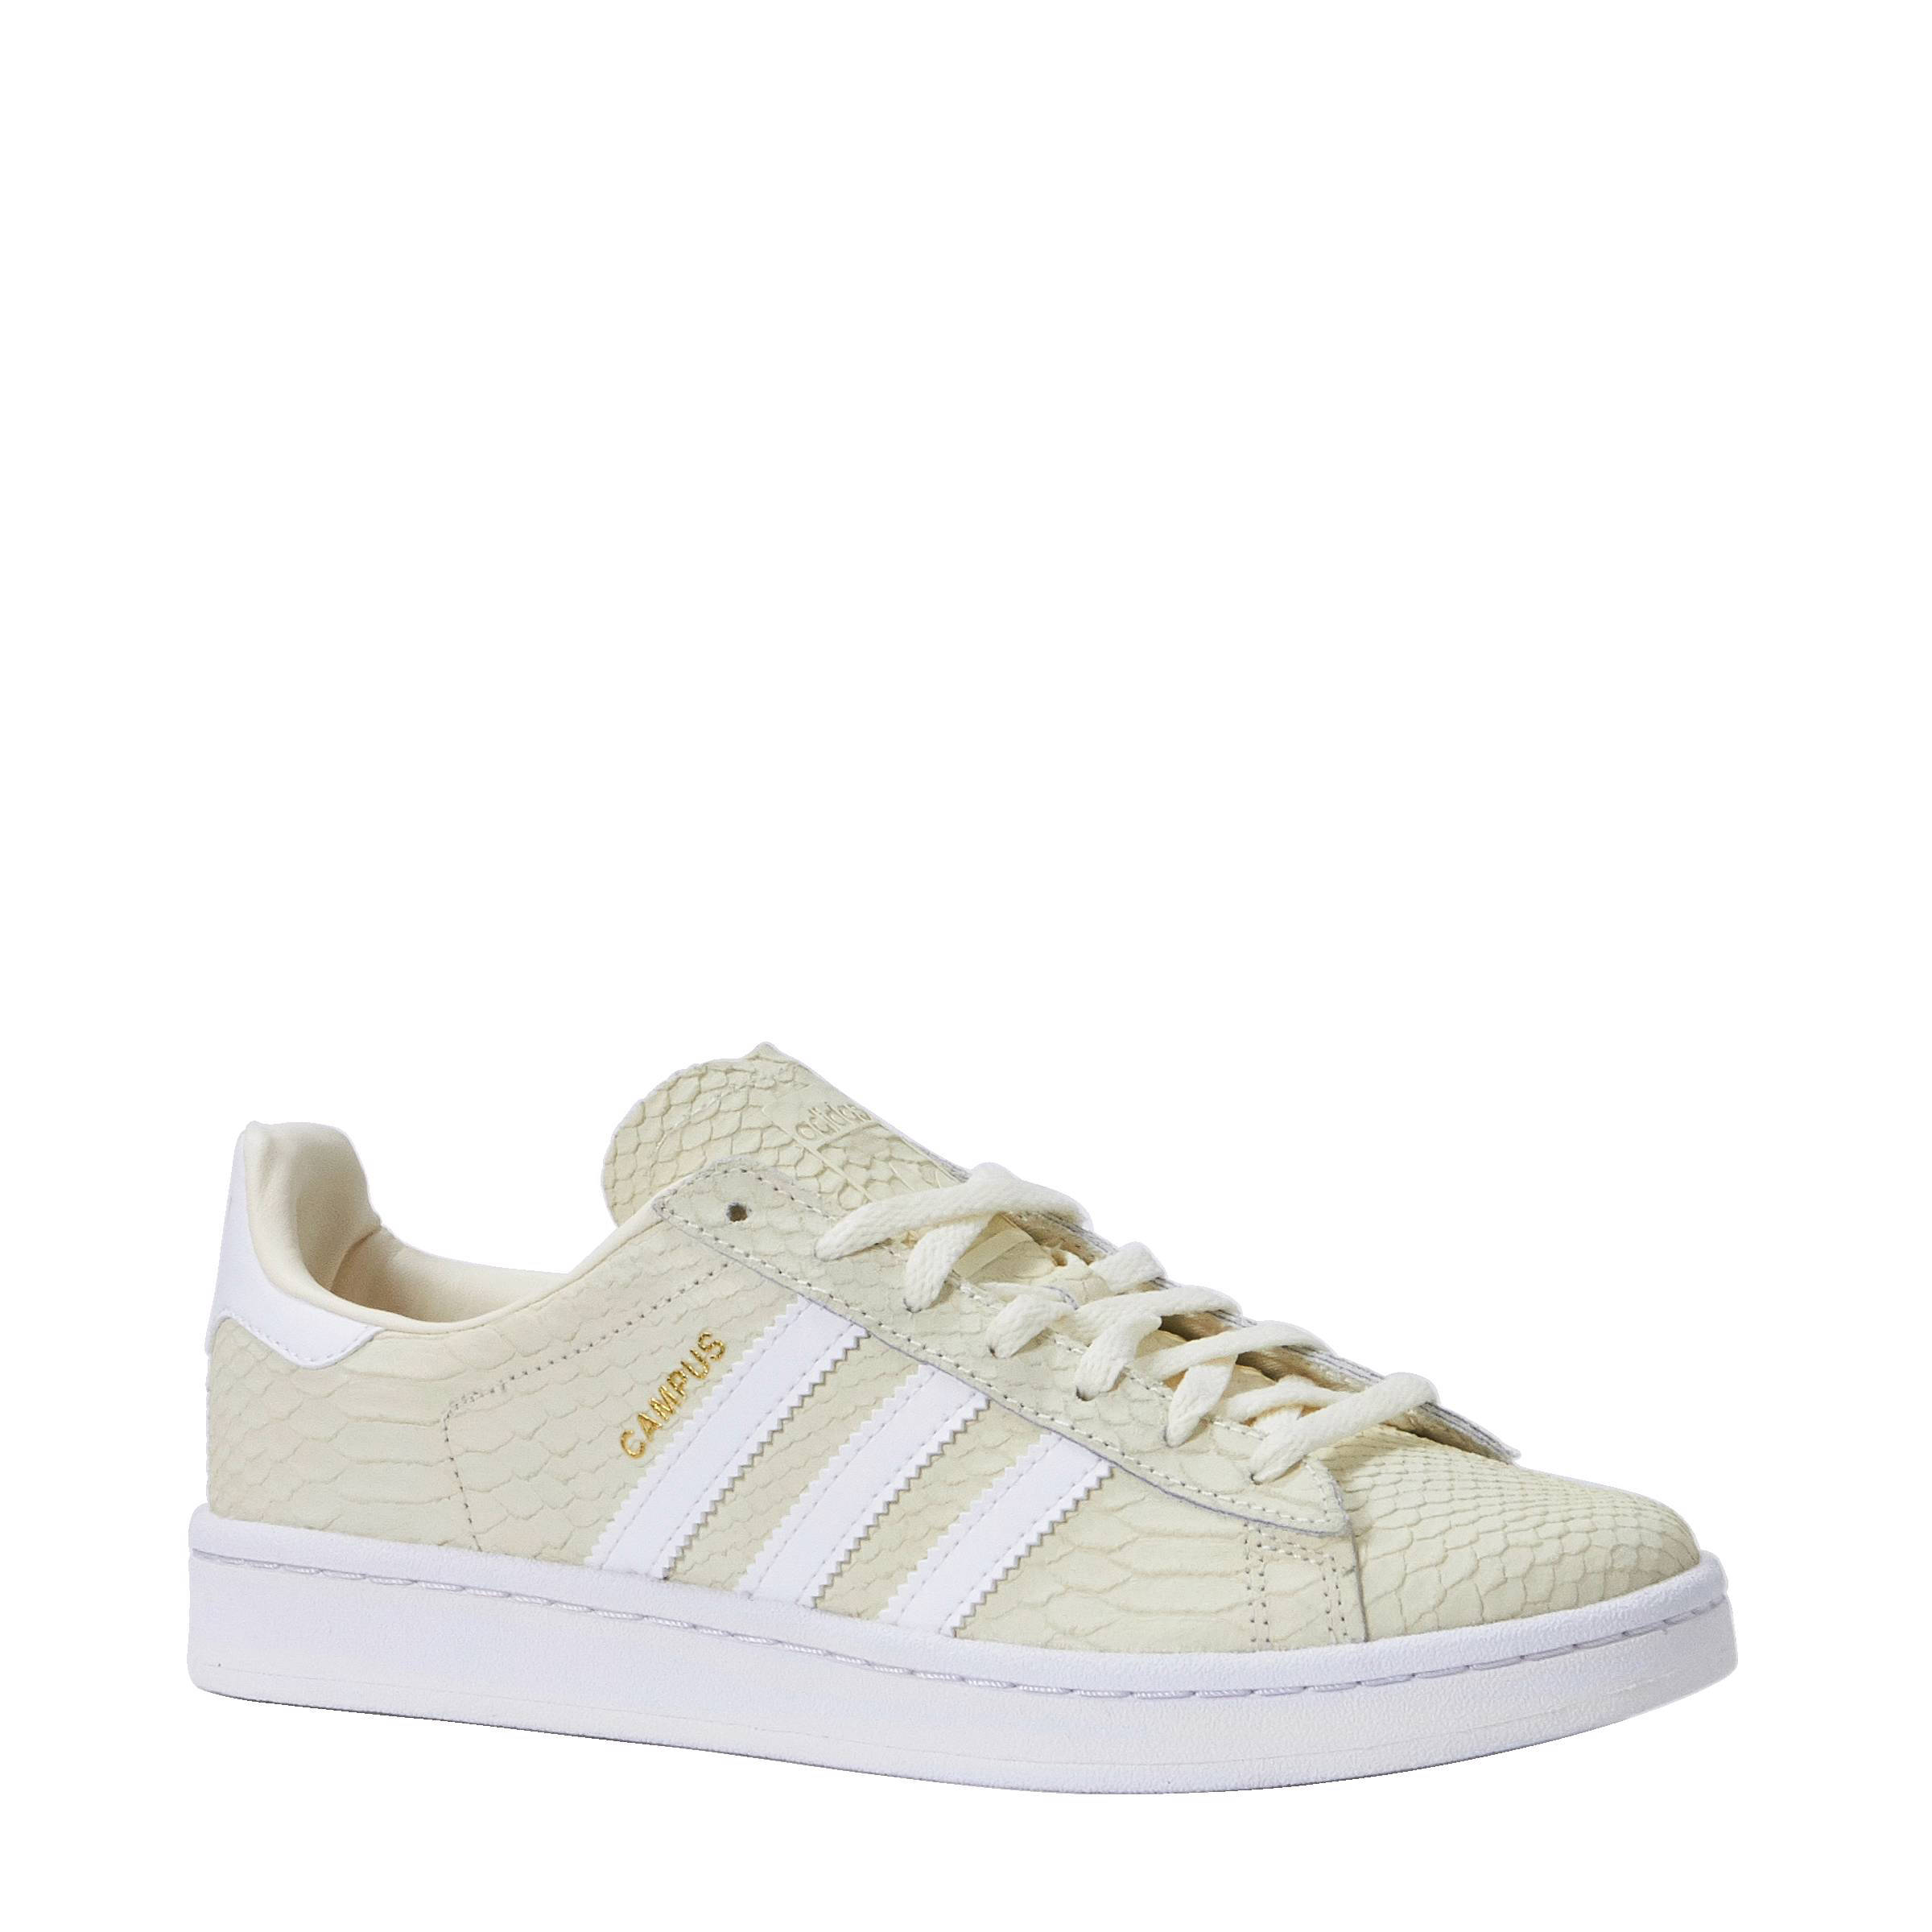 reputable site 2a5b9 bfba3 adidas originals Campus W nubuck sneakers  wehkamp